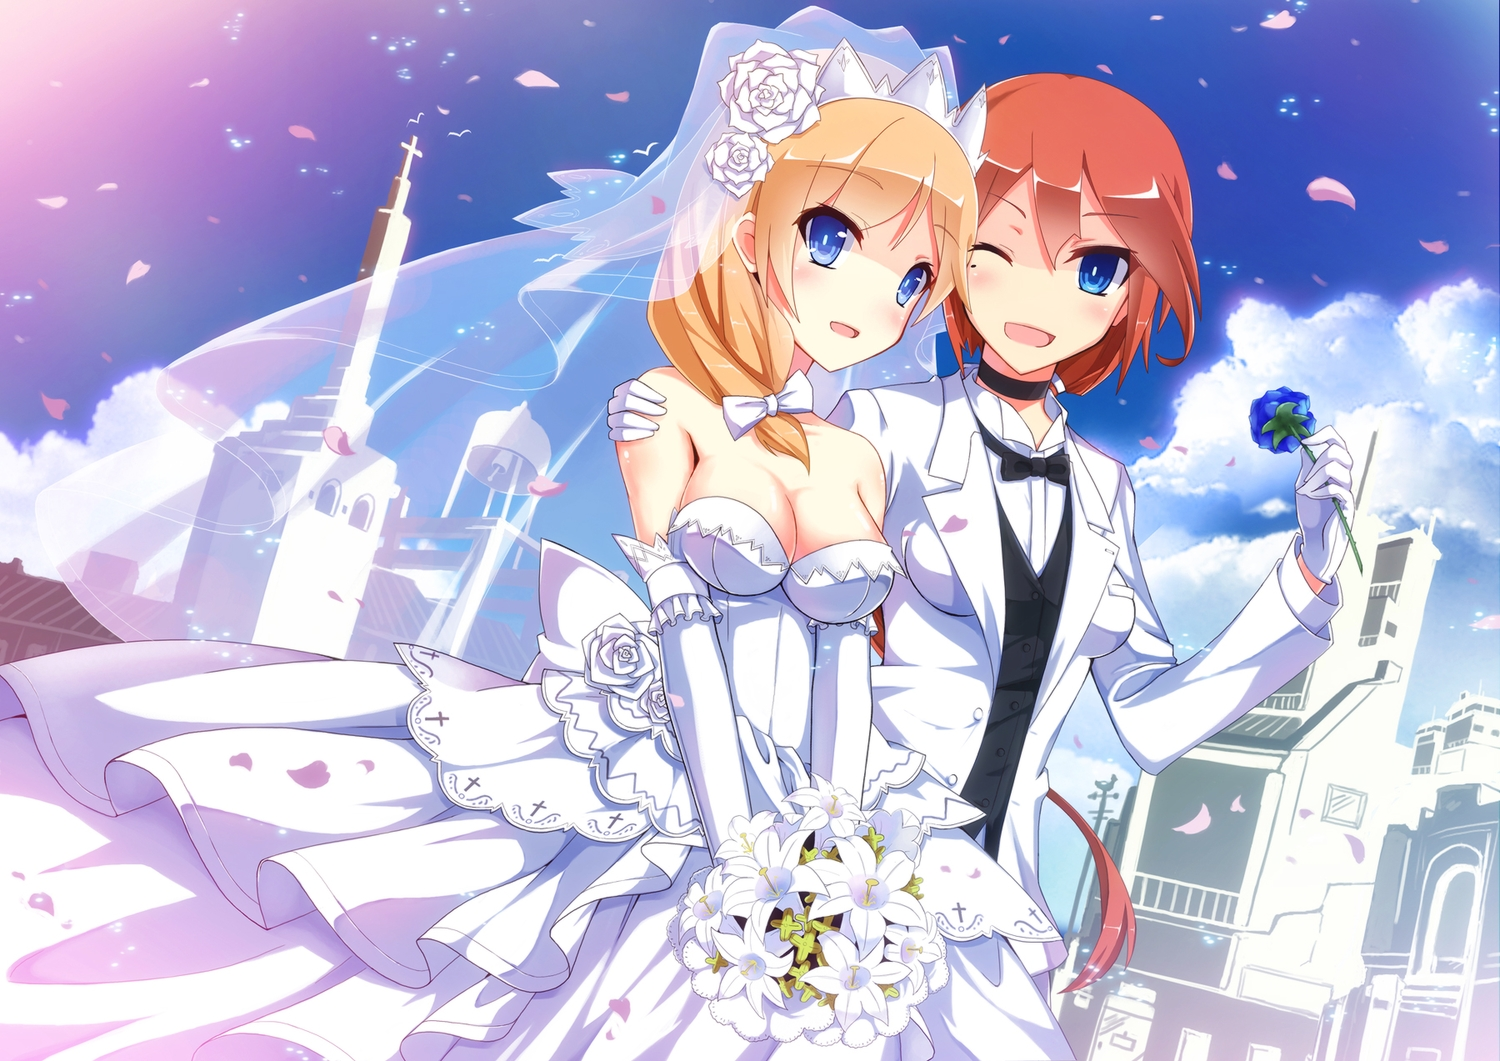 2girls anthropomorphism blonde_hair blue_eyes blush bow breasts choker cleavage dress elbow_gloves flowers gloves headdress nelson orange_hair petals ponytail rodney shoujo_ai suit uiu wedding wedding_attire wink zhanjian_shaonu